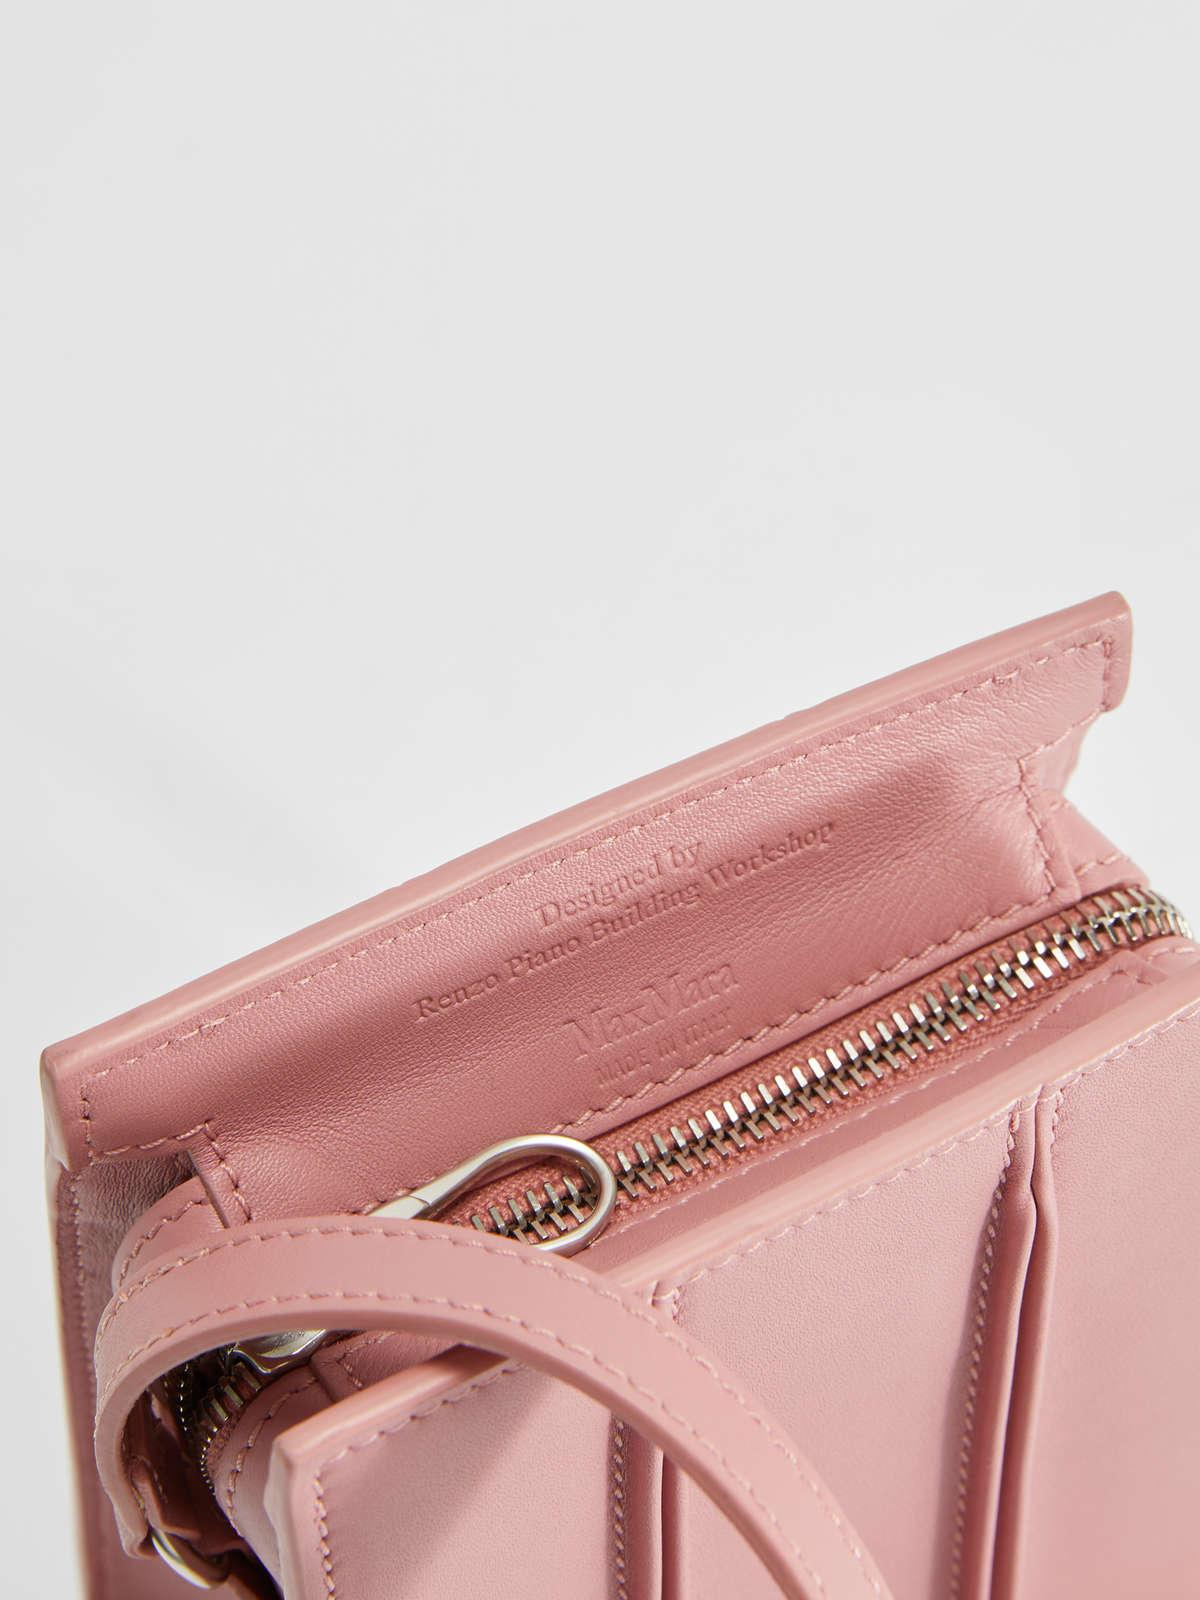 Womens Max Mara Shoulder Bags | Mini Whitney Bag In Leather Antique Rose